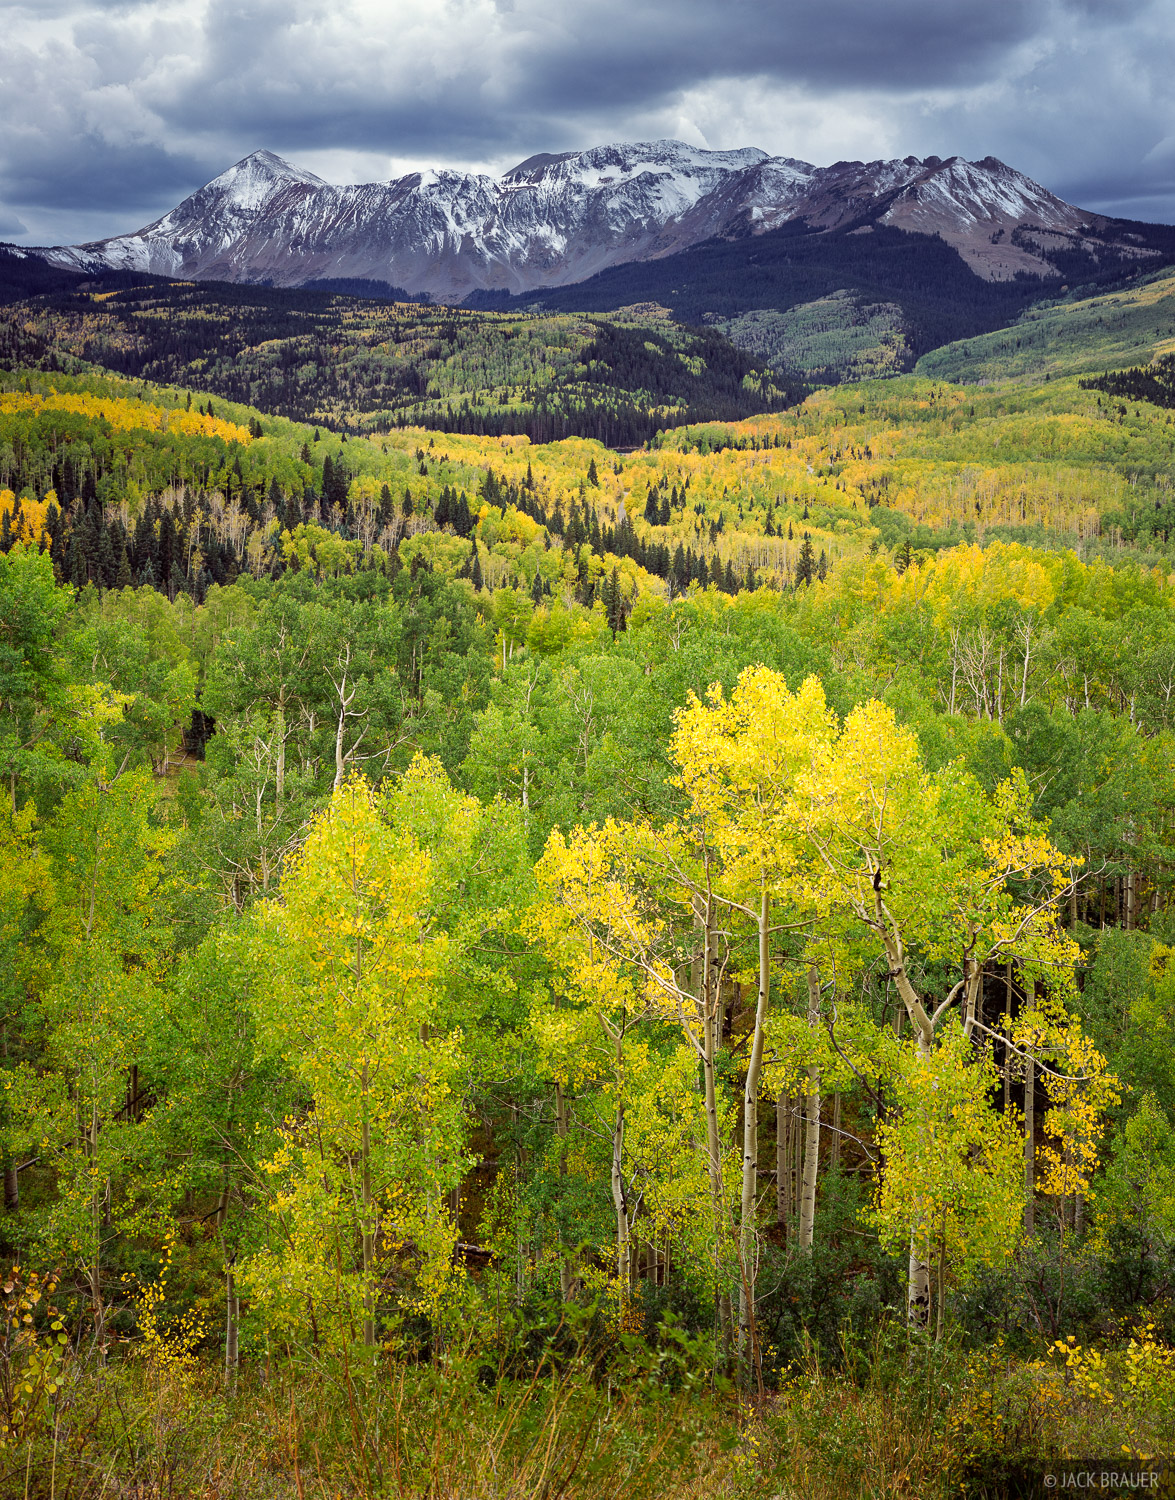 Dolores Peak, 13,290 ft., towers over vast fields of yellow and green aspens near Telluride.